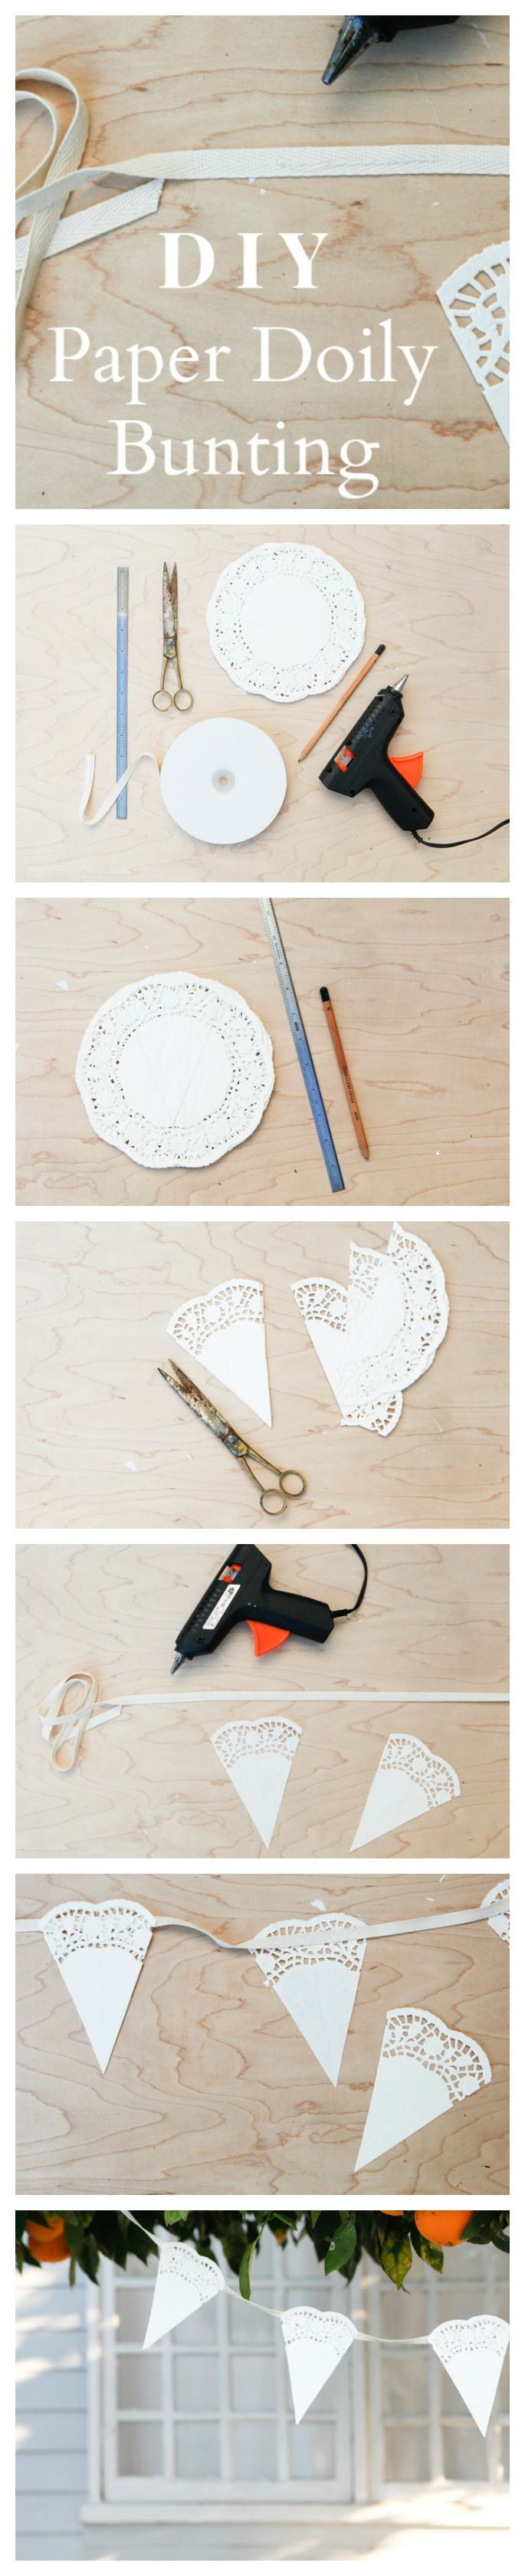 How To Make Paper Doily Bunting Rustic Wedding Chic